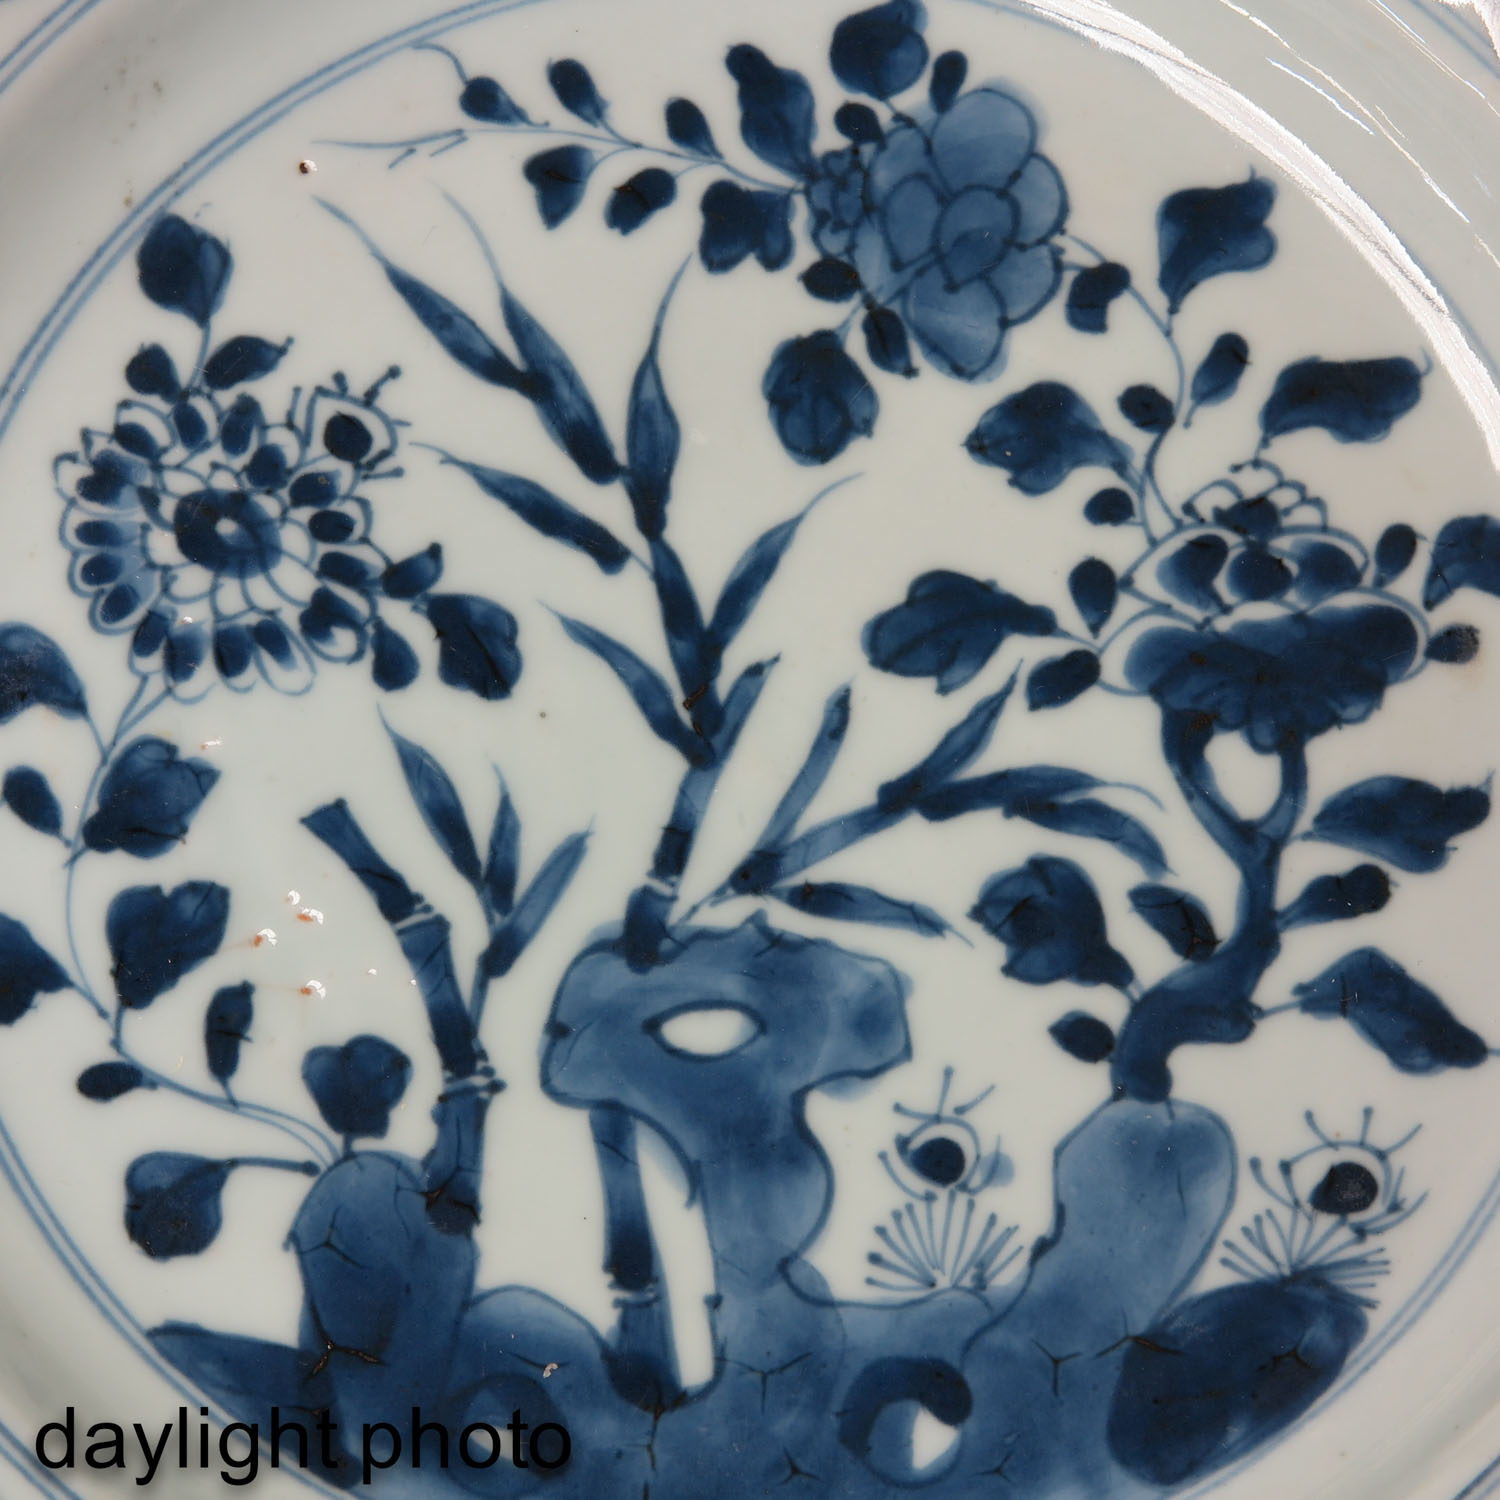 A Pair of Blue and White Plates - Image 9 of 9